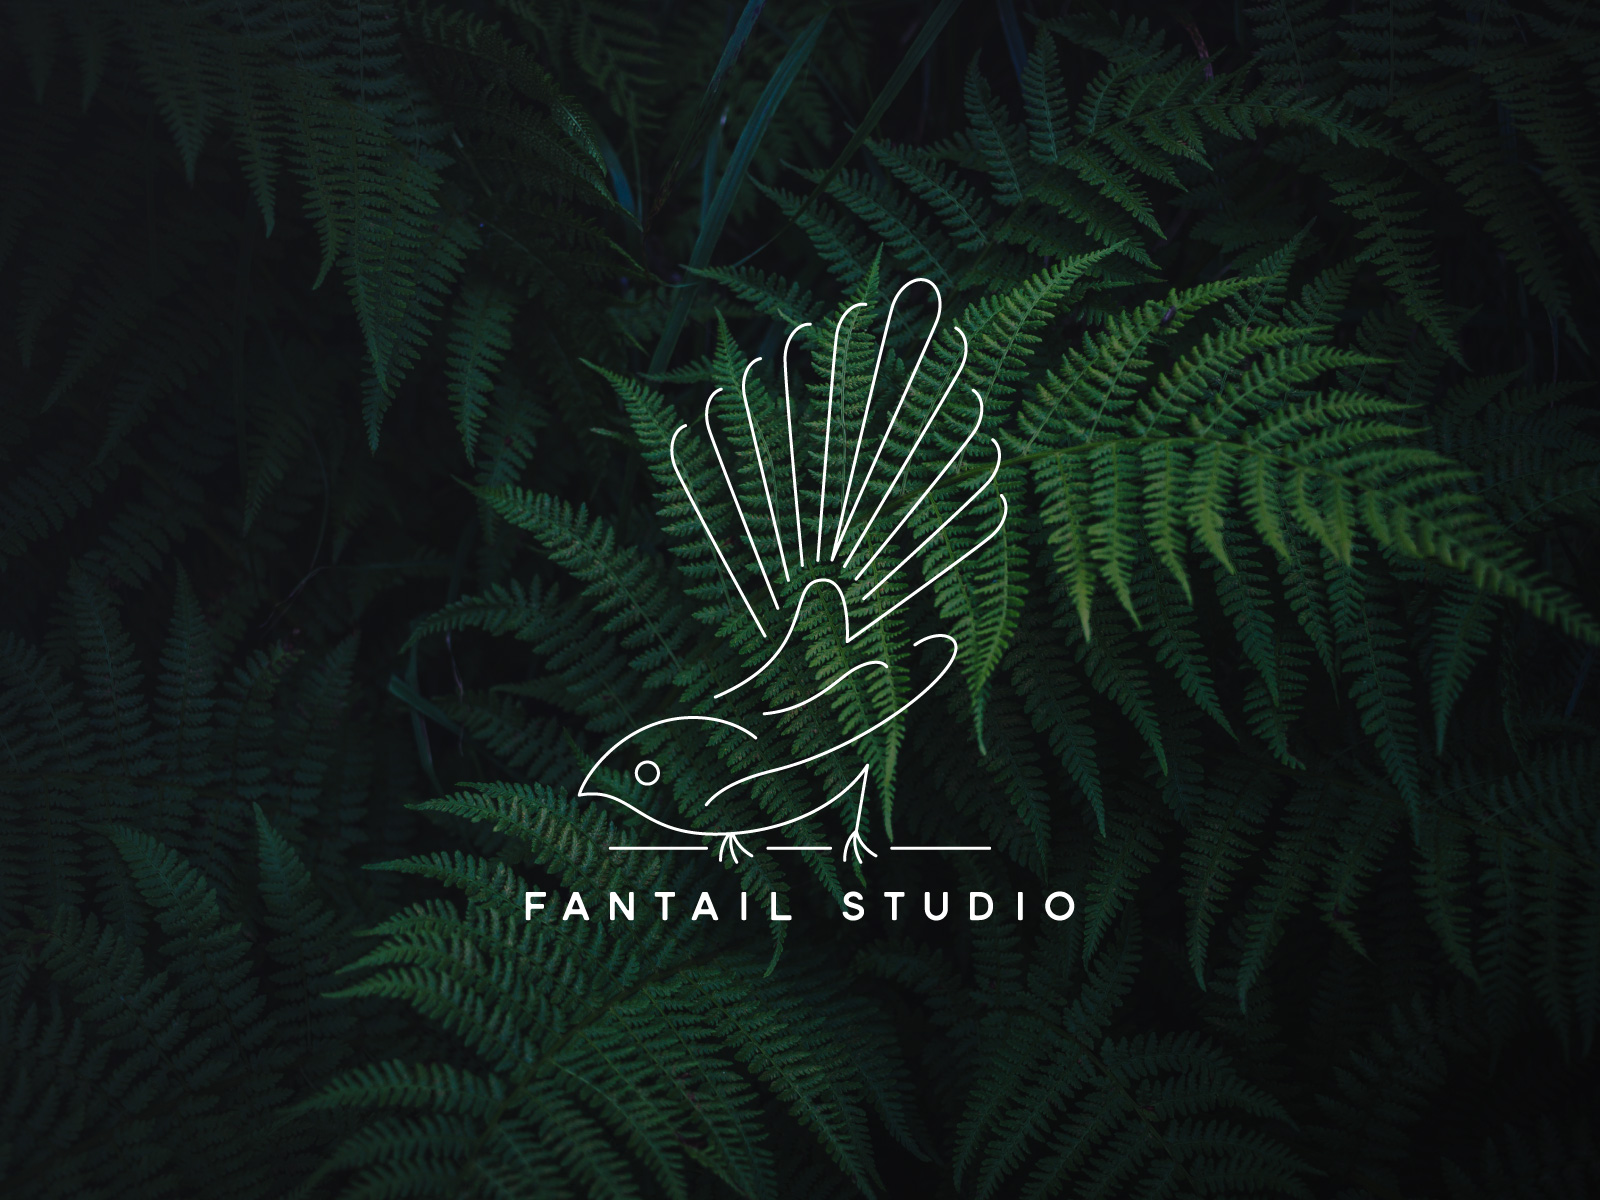 Fantail Studio - The studio of my aunt, Sandra Corbett, a bookbinder, tutor, and tinker artist. This is my take on a fantail, a native New Zealand bird.